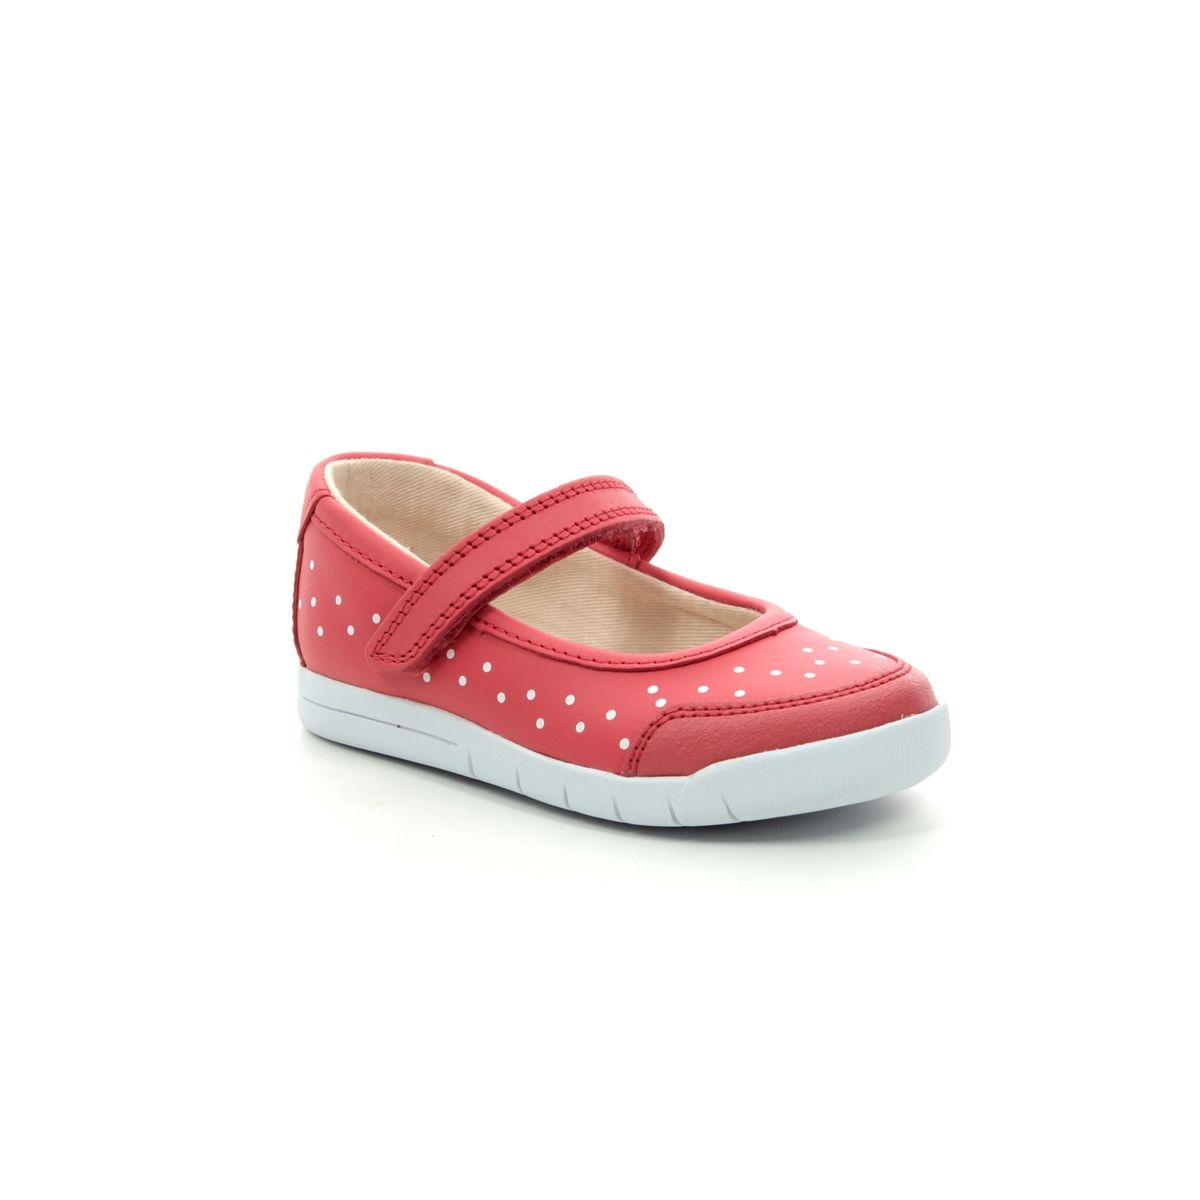 Clarks 411706F Emery Halo T Coral Kids First Shoes